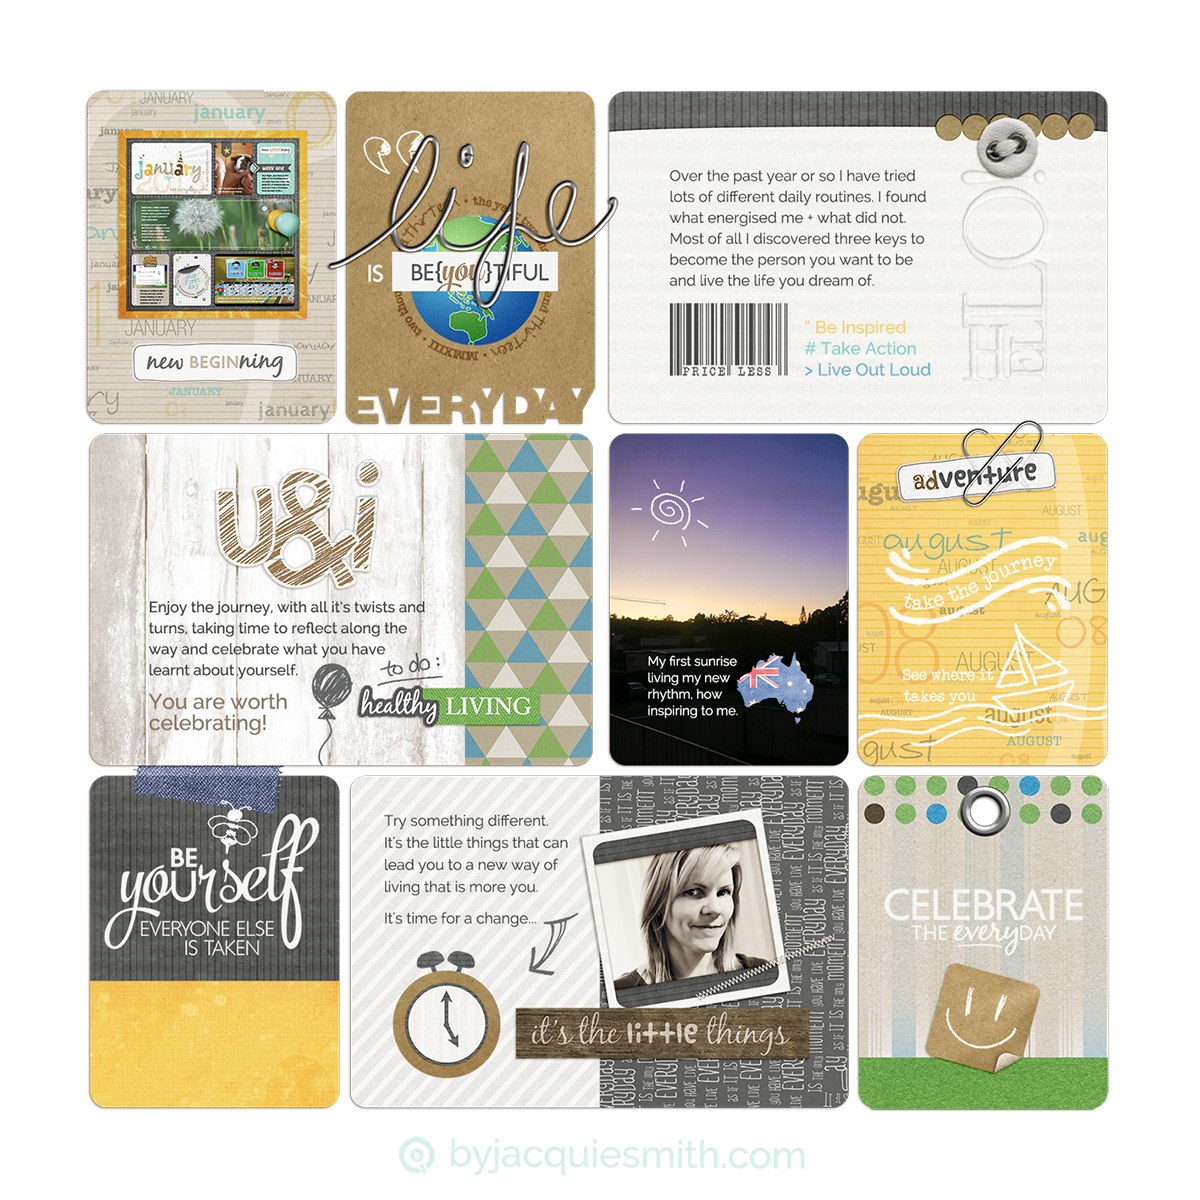 Pocket pageGrids, perfect for memory keeping + photo albums at byjacquiesmith.com